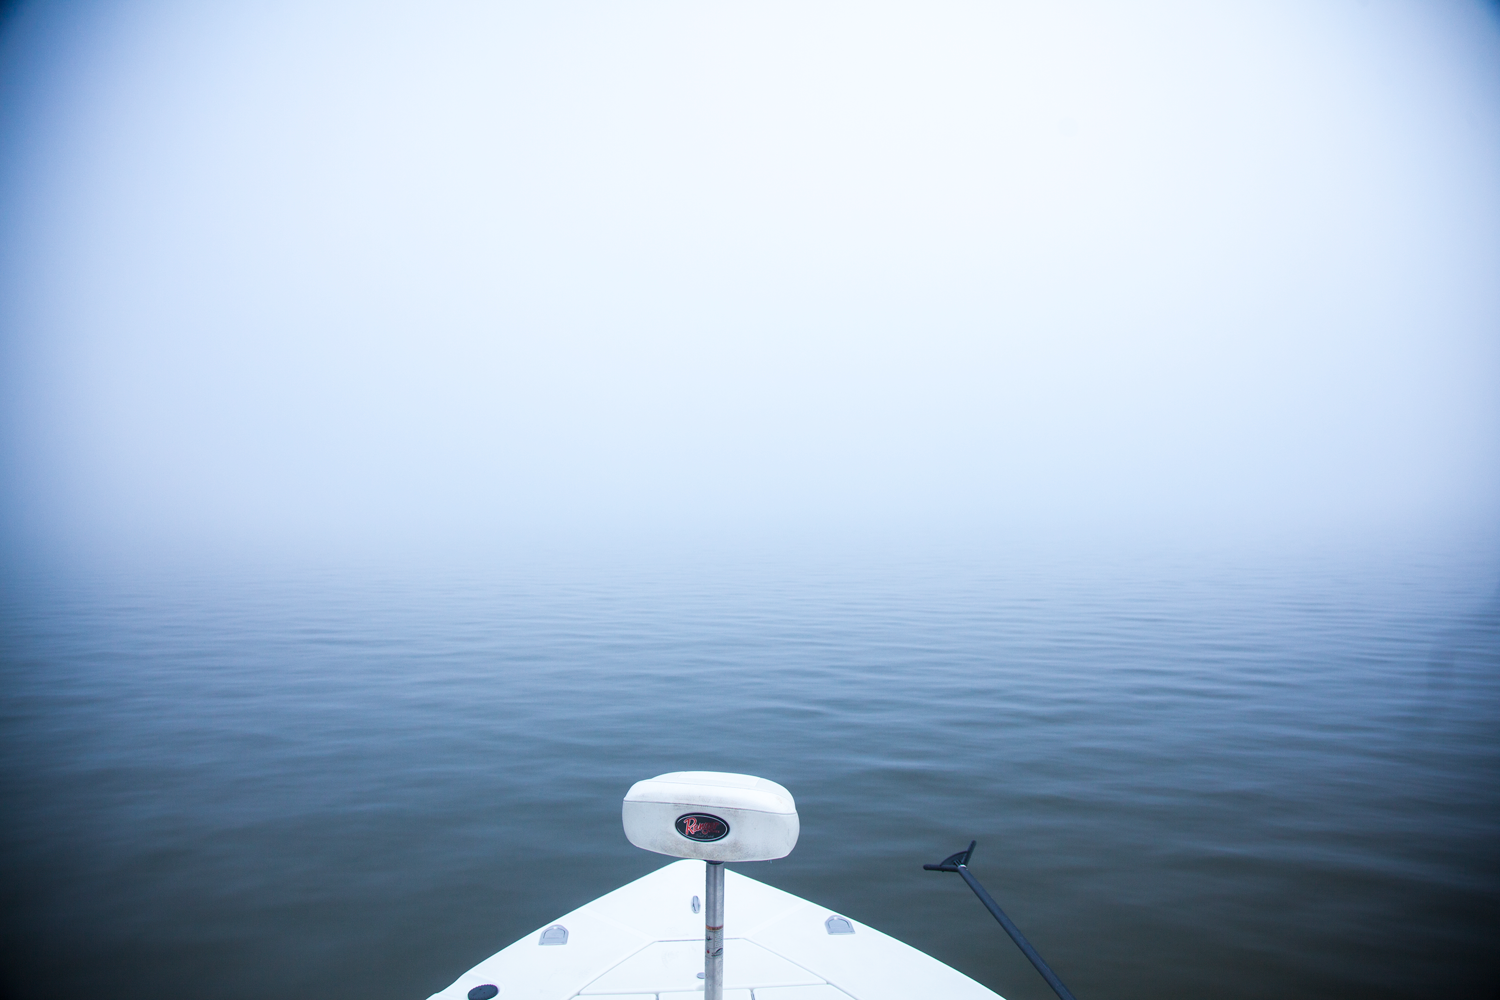 Foggy! I love these kind of mornings on the Bay. Better know where you're going though!